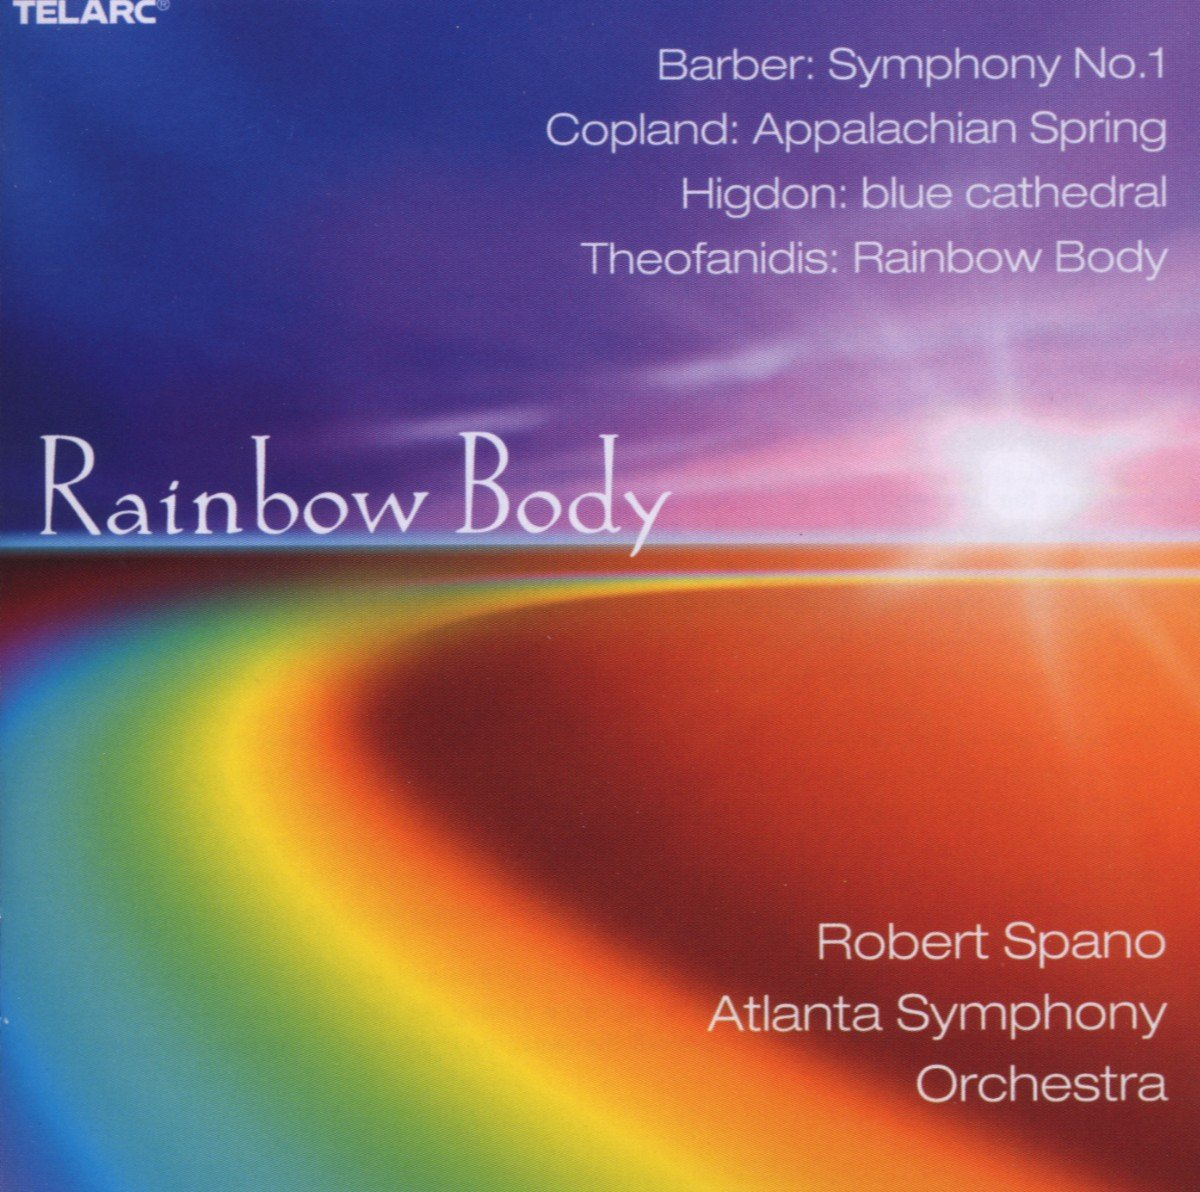 Rainbow Body / Blue Cathedral / Symphony 1 / Appalachian Spring Suite by TELARC.